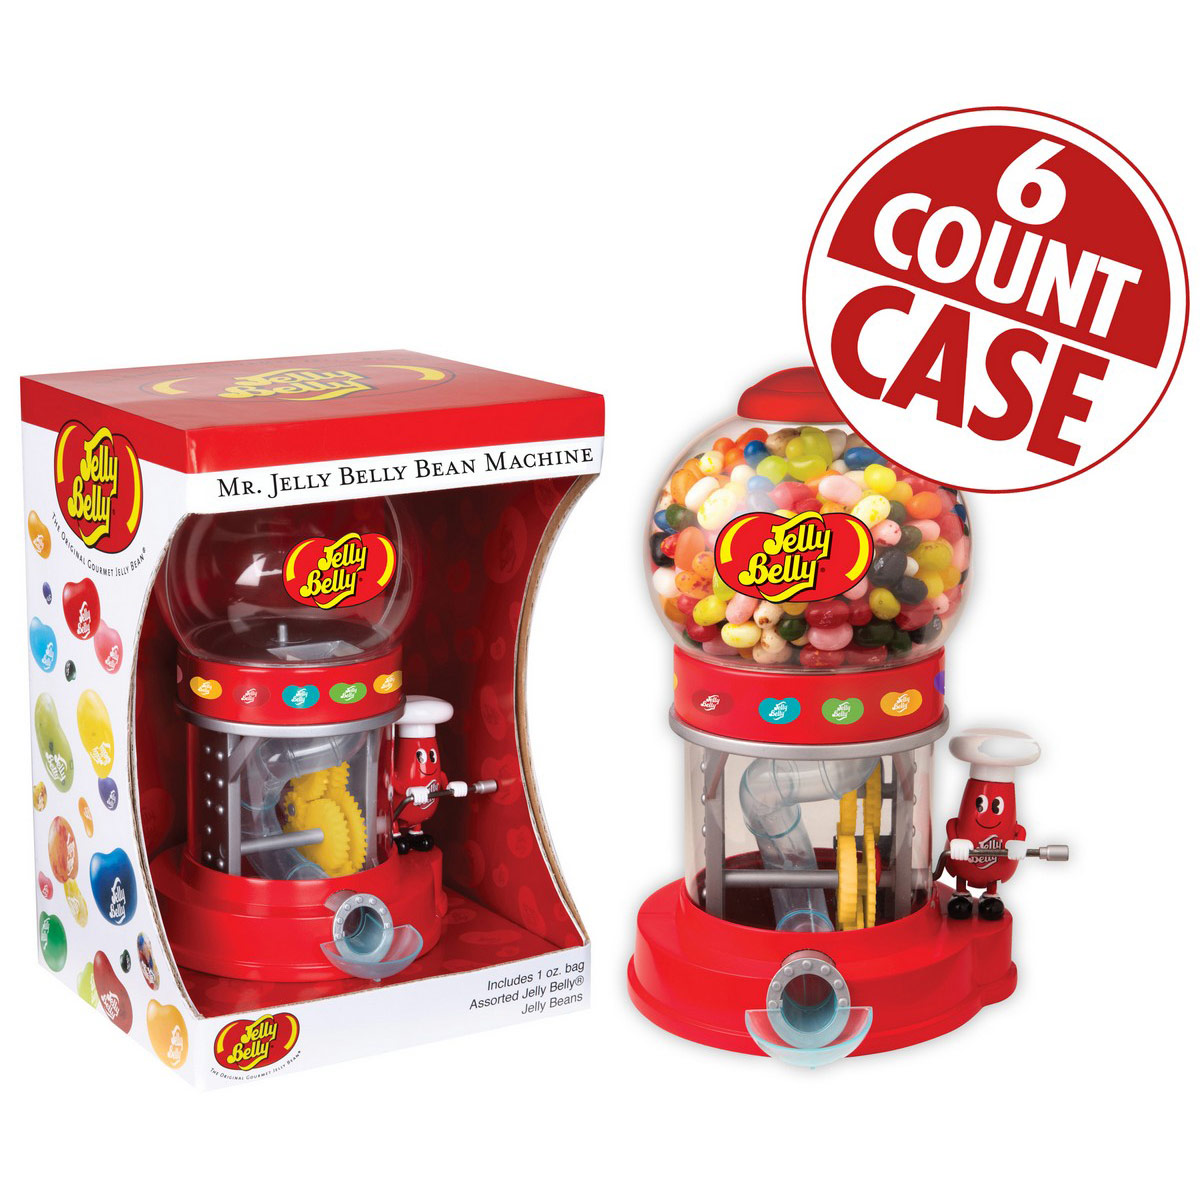 Mr. Jelly Belly Bean Machine - 6 Count Case